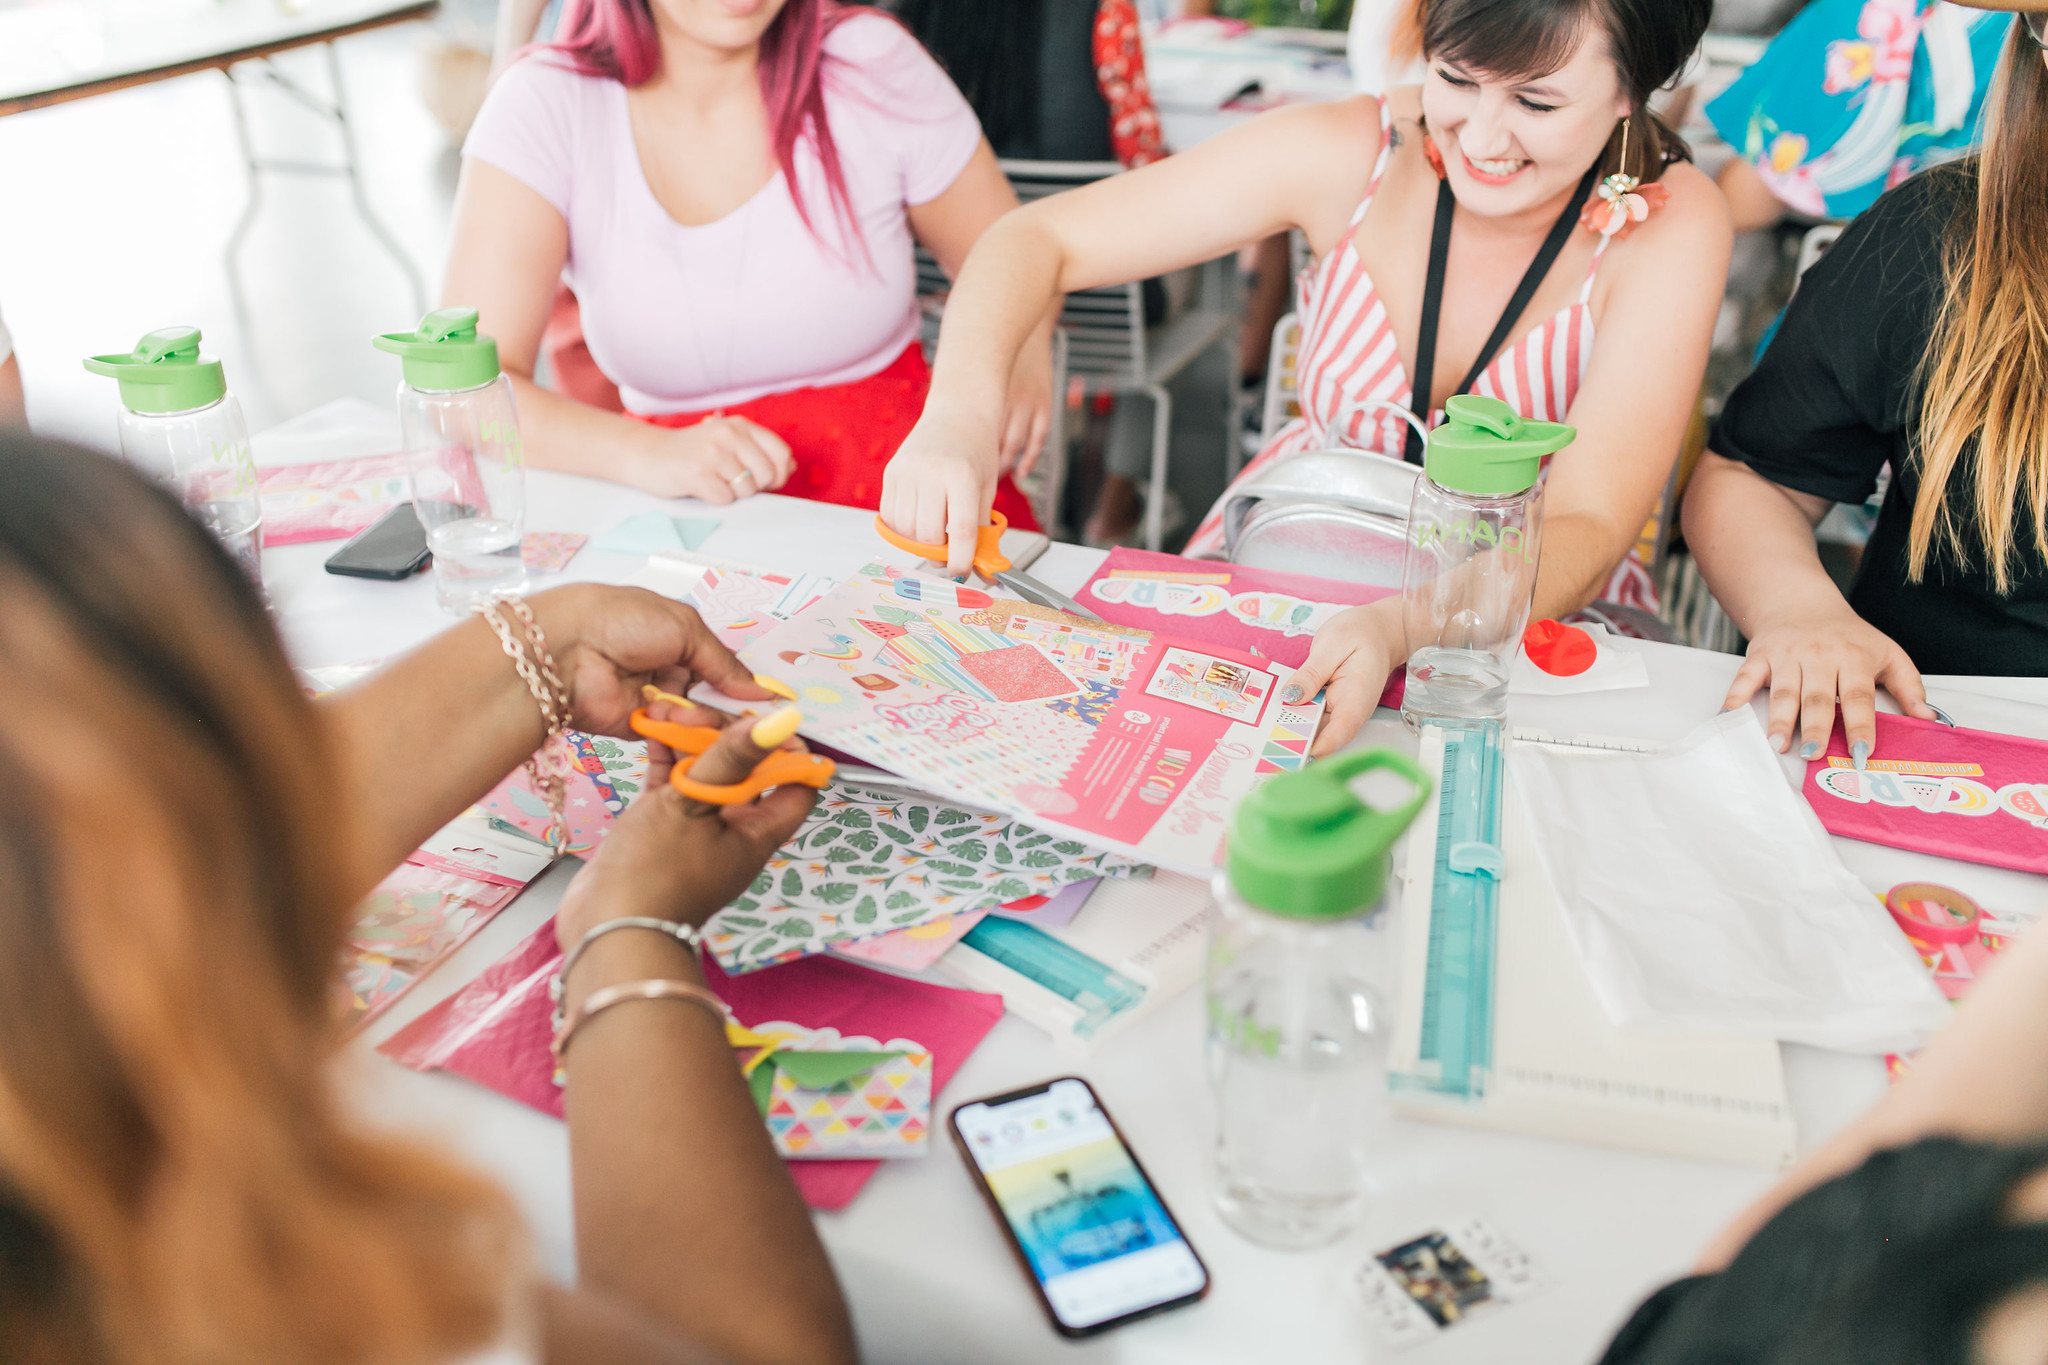 Me getting ready to get creative with  Damask Love  in the makers space,  Photo by Christina Best